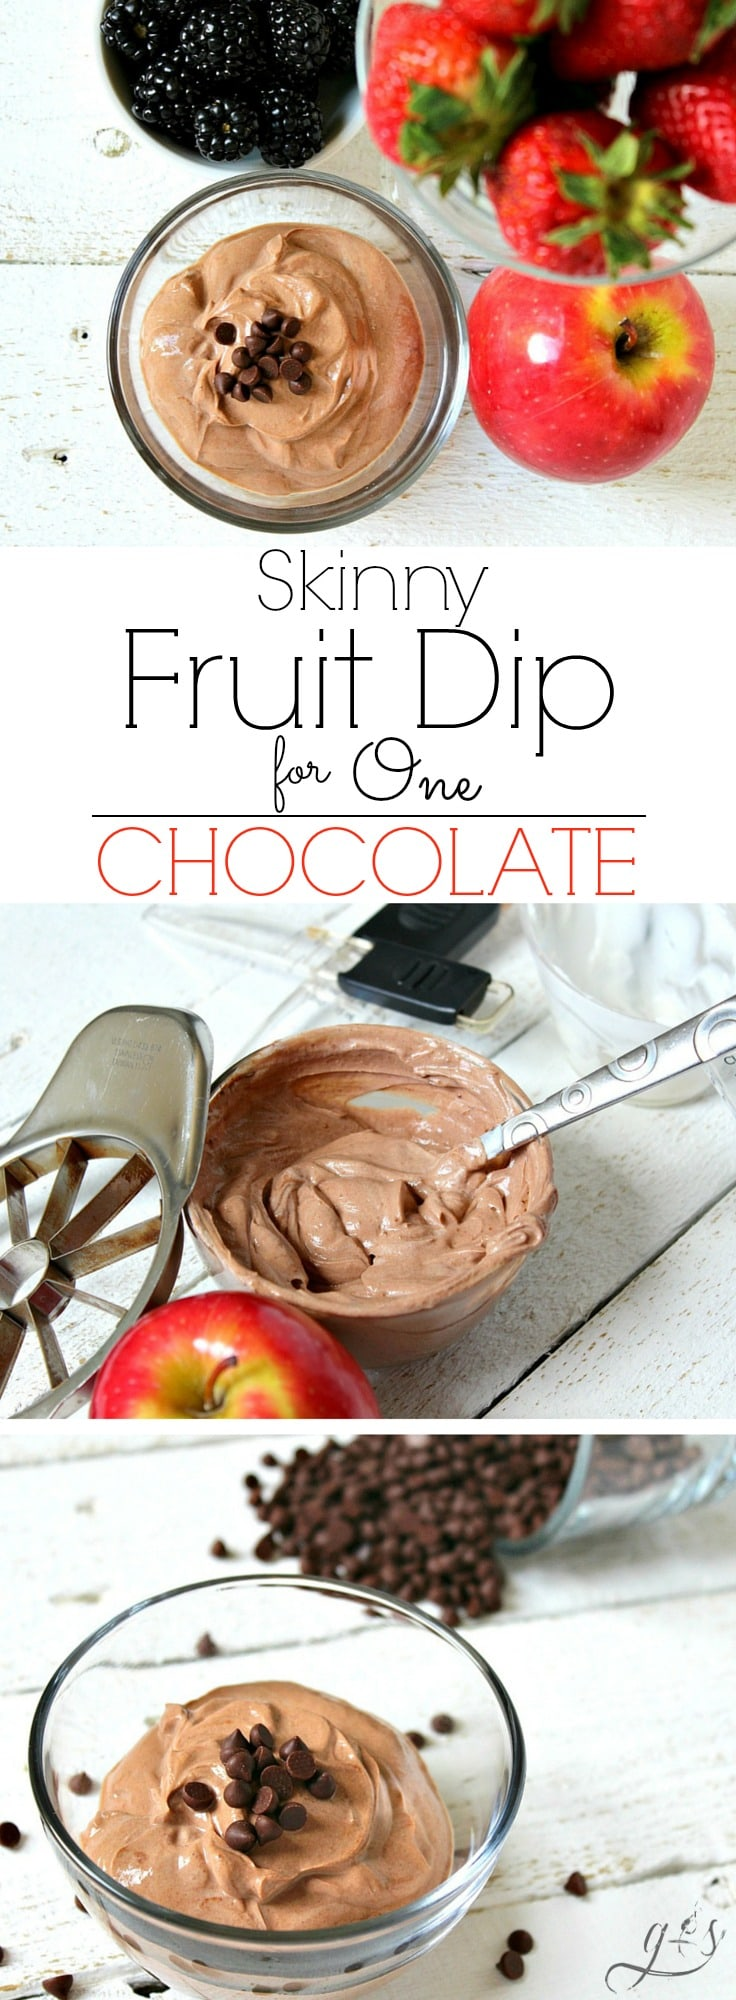 The BEST Skinny Chocolate Fruit Dip for One   A healthy, high protein dip recipe made with plain Greek yogurt and other clean eating ingredients! This easy and low carb chocolate dip will quickly become your favorite snack! It's perfect for dipping fruit like apples or strawberries.